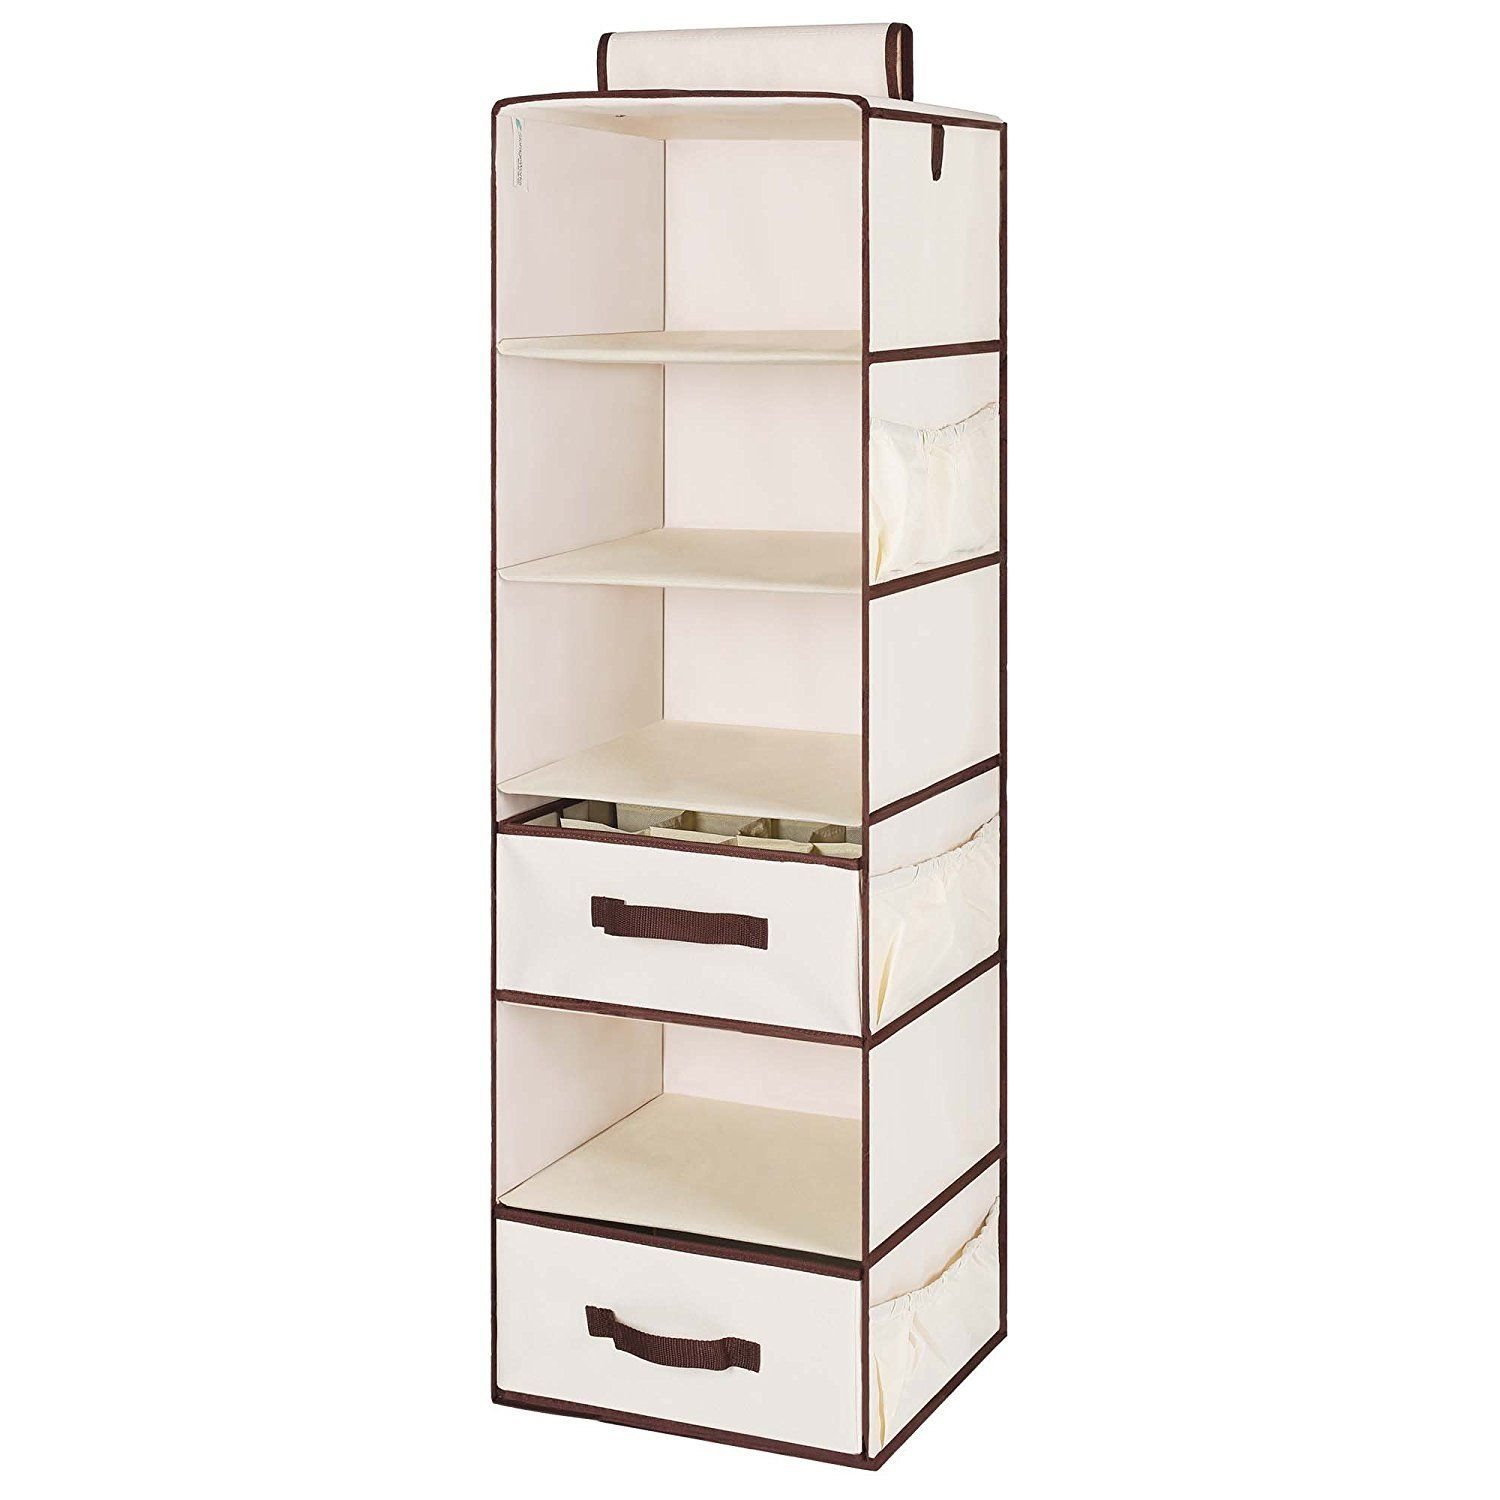 in an organizer linen organization storage overview custom design hanging closet with system drawers of options reach basic